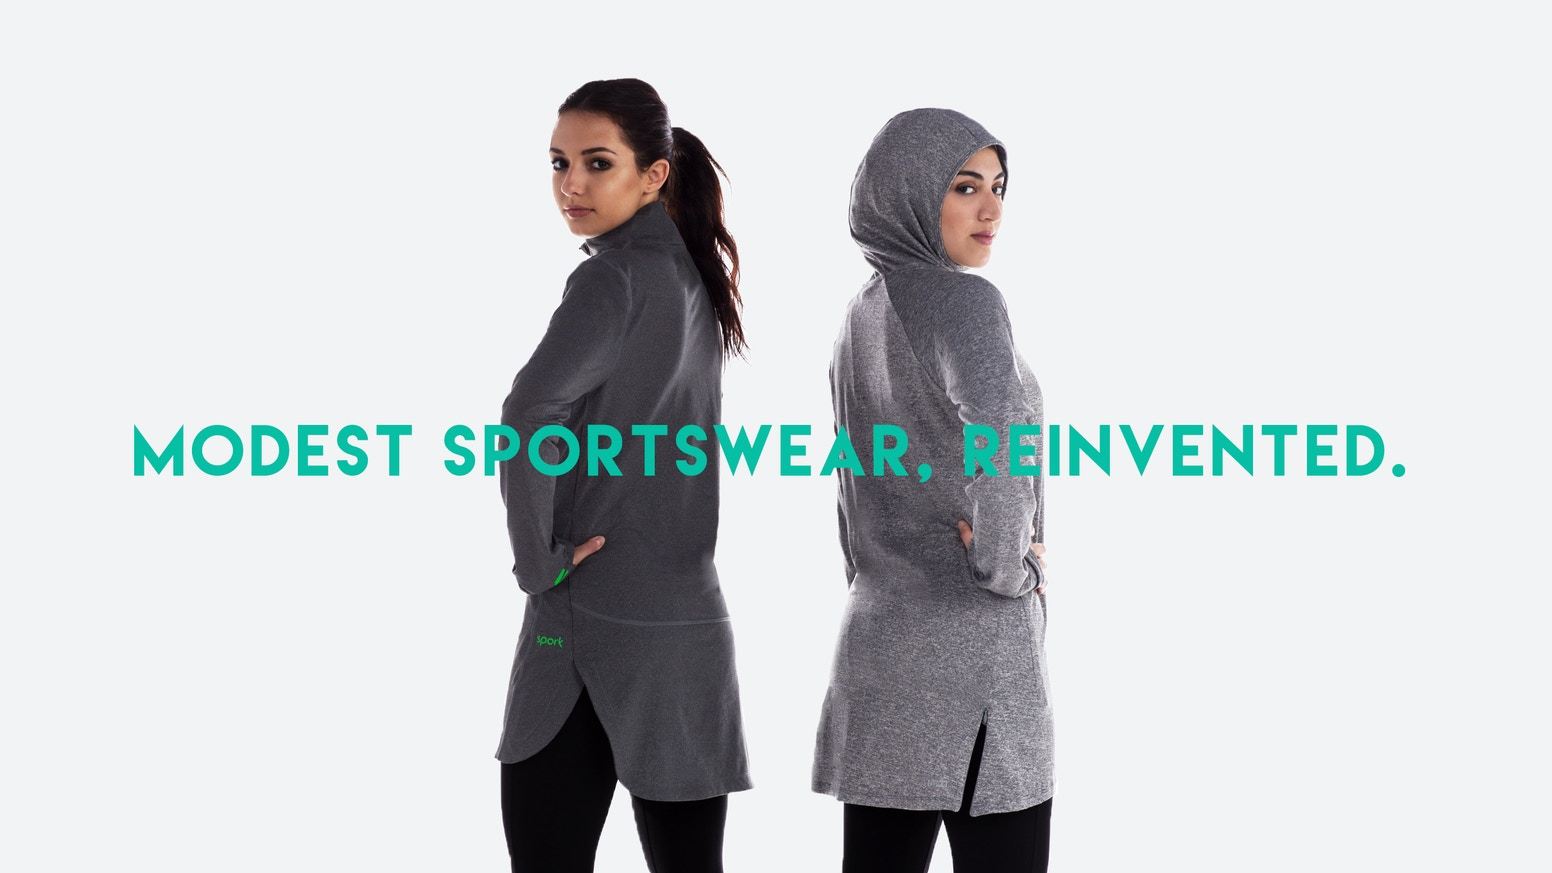 Modest, functional, and fashionable sportswear so you can stay both active and covered, without losing your sense of style.